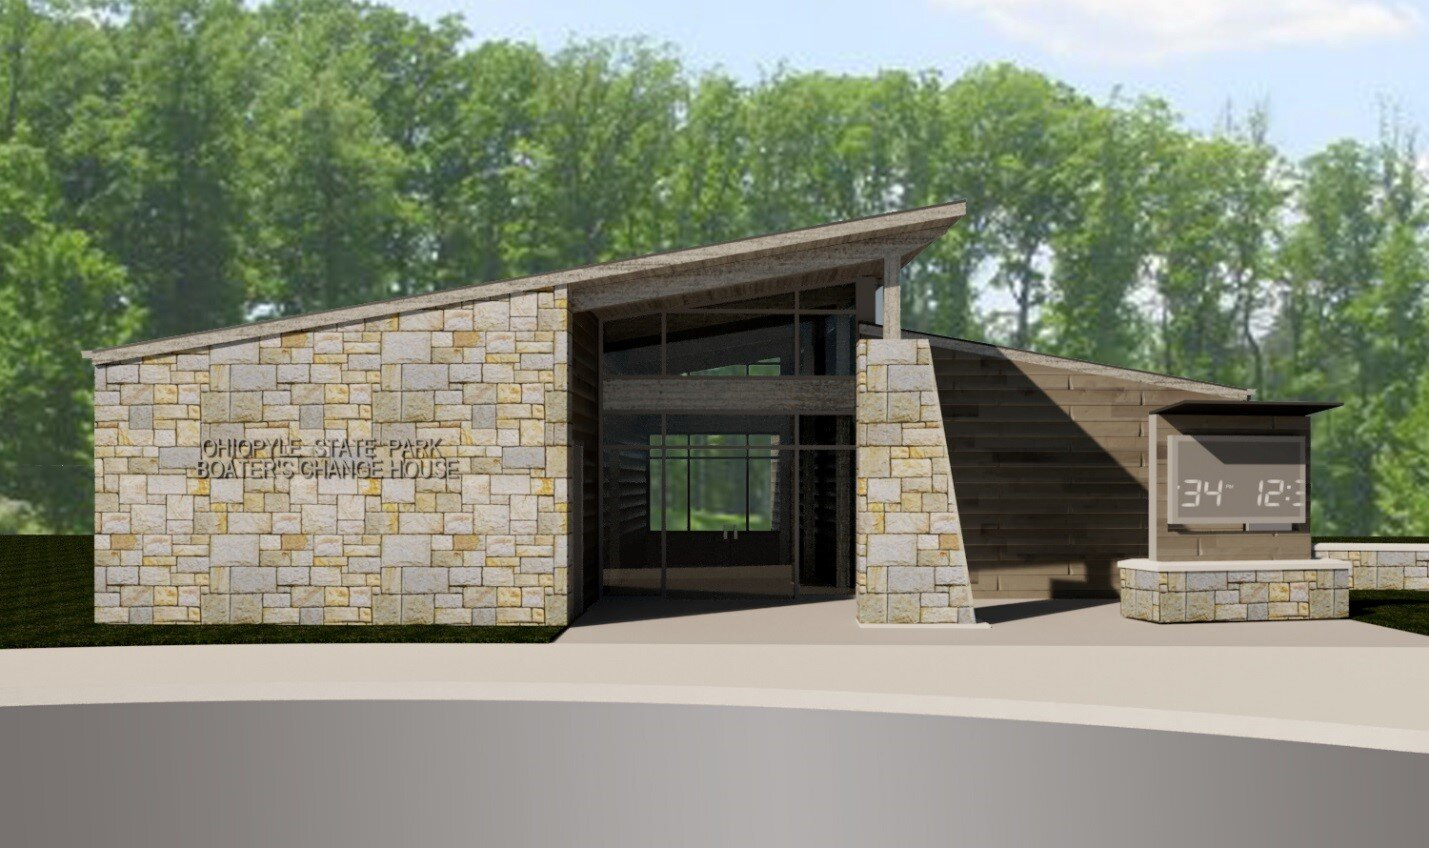 Ohiopyle Boater's Change House Exterior Rendering